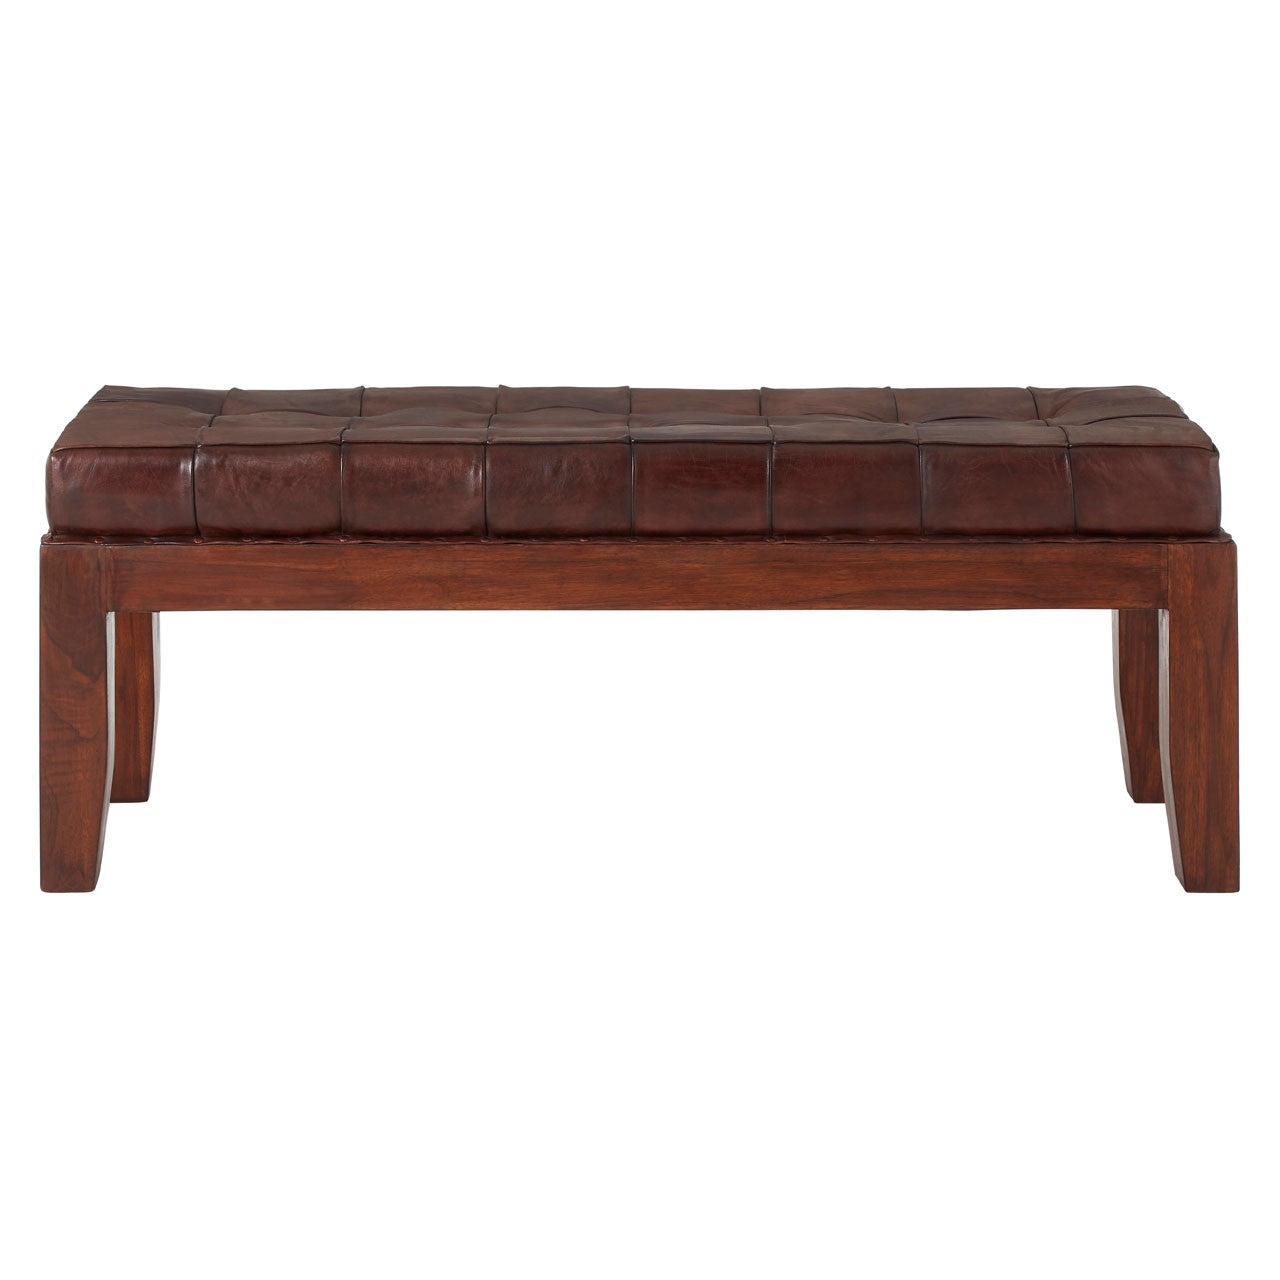 Inca Antique Brown Leather Stitch Bench